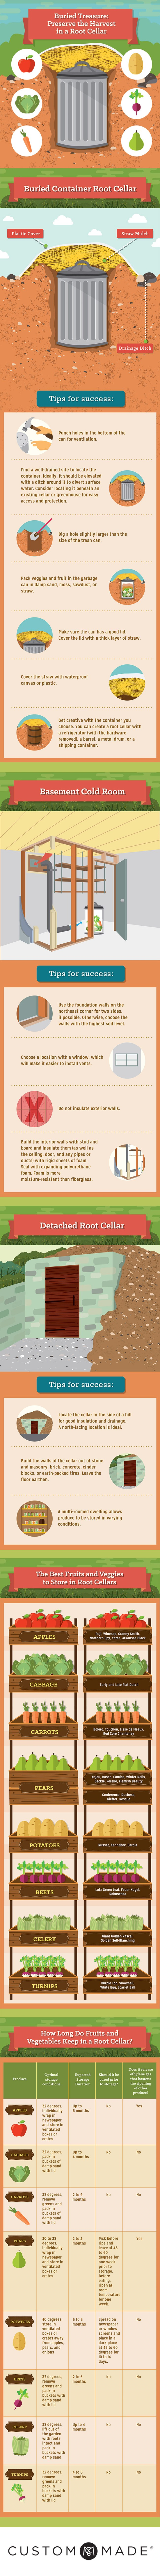 Buried Treasure: Preserve the Harvest in a Root Cellar